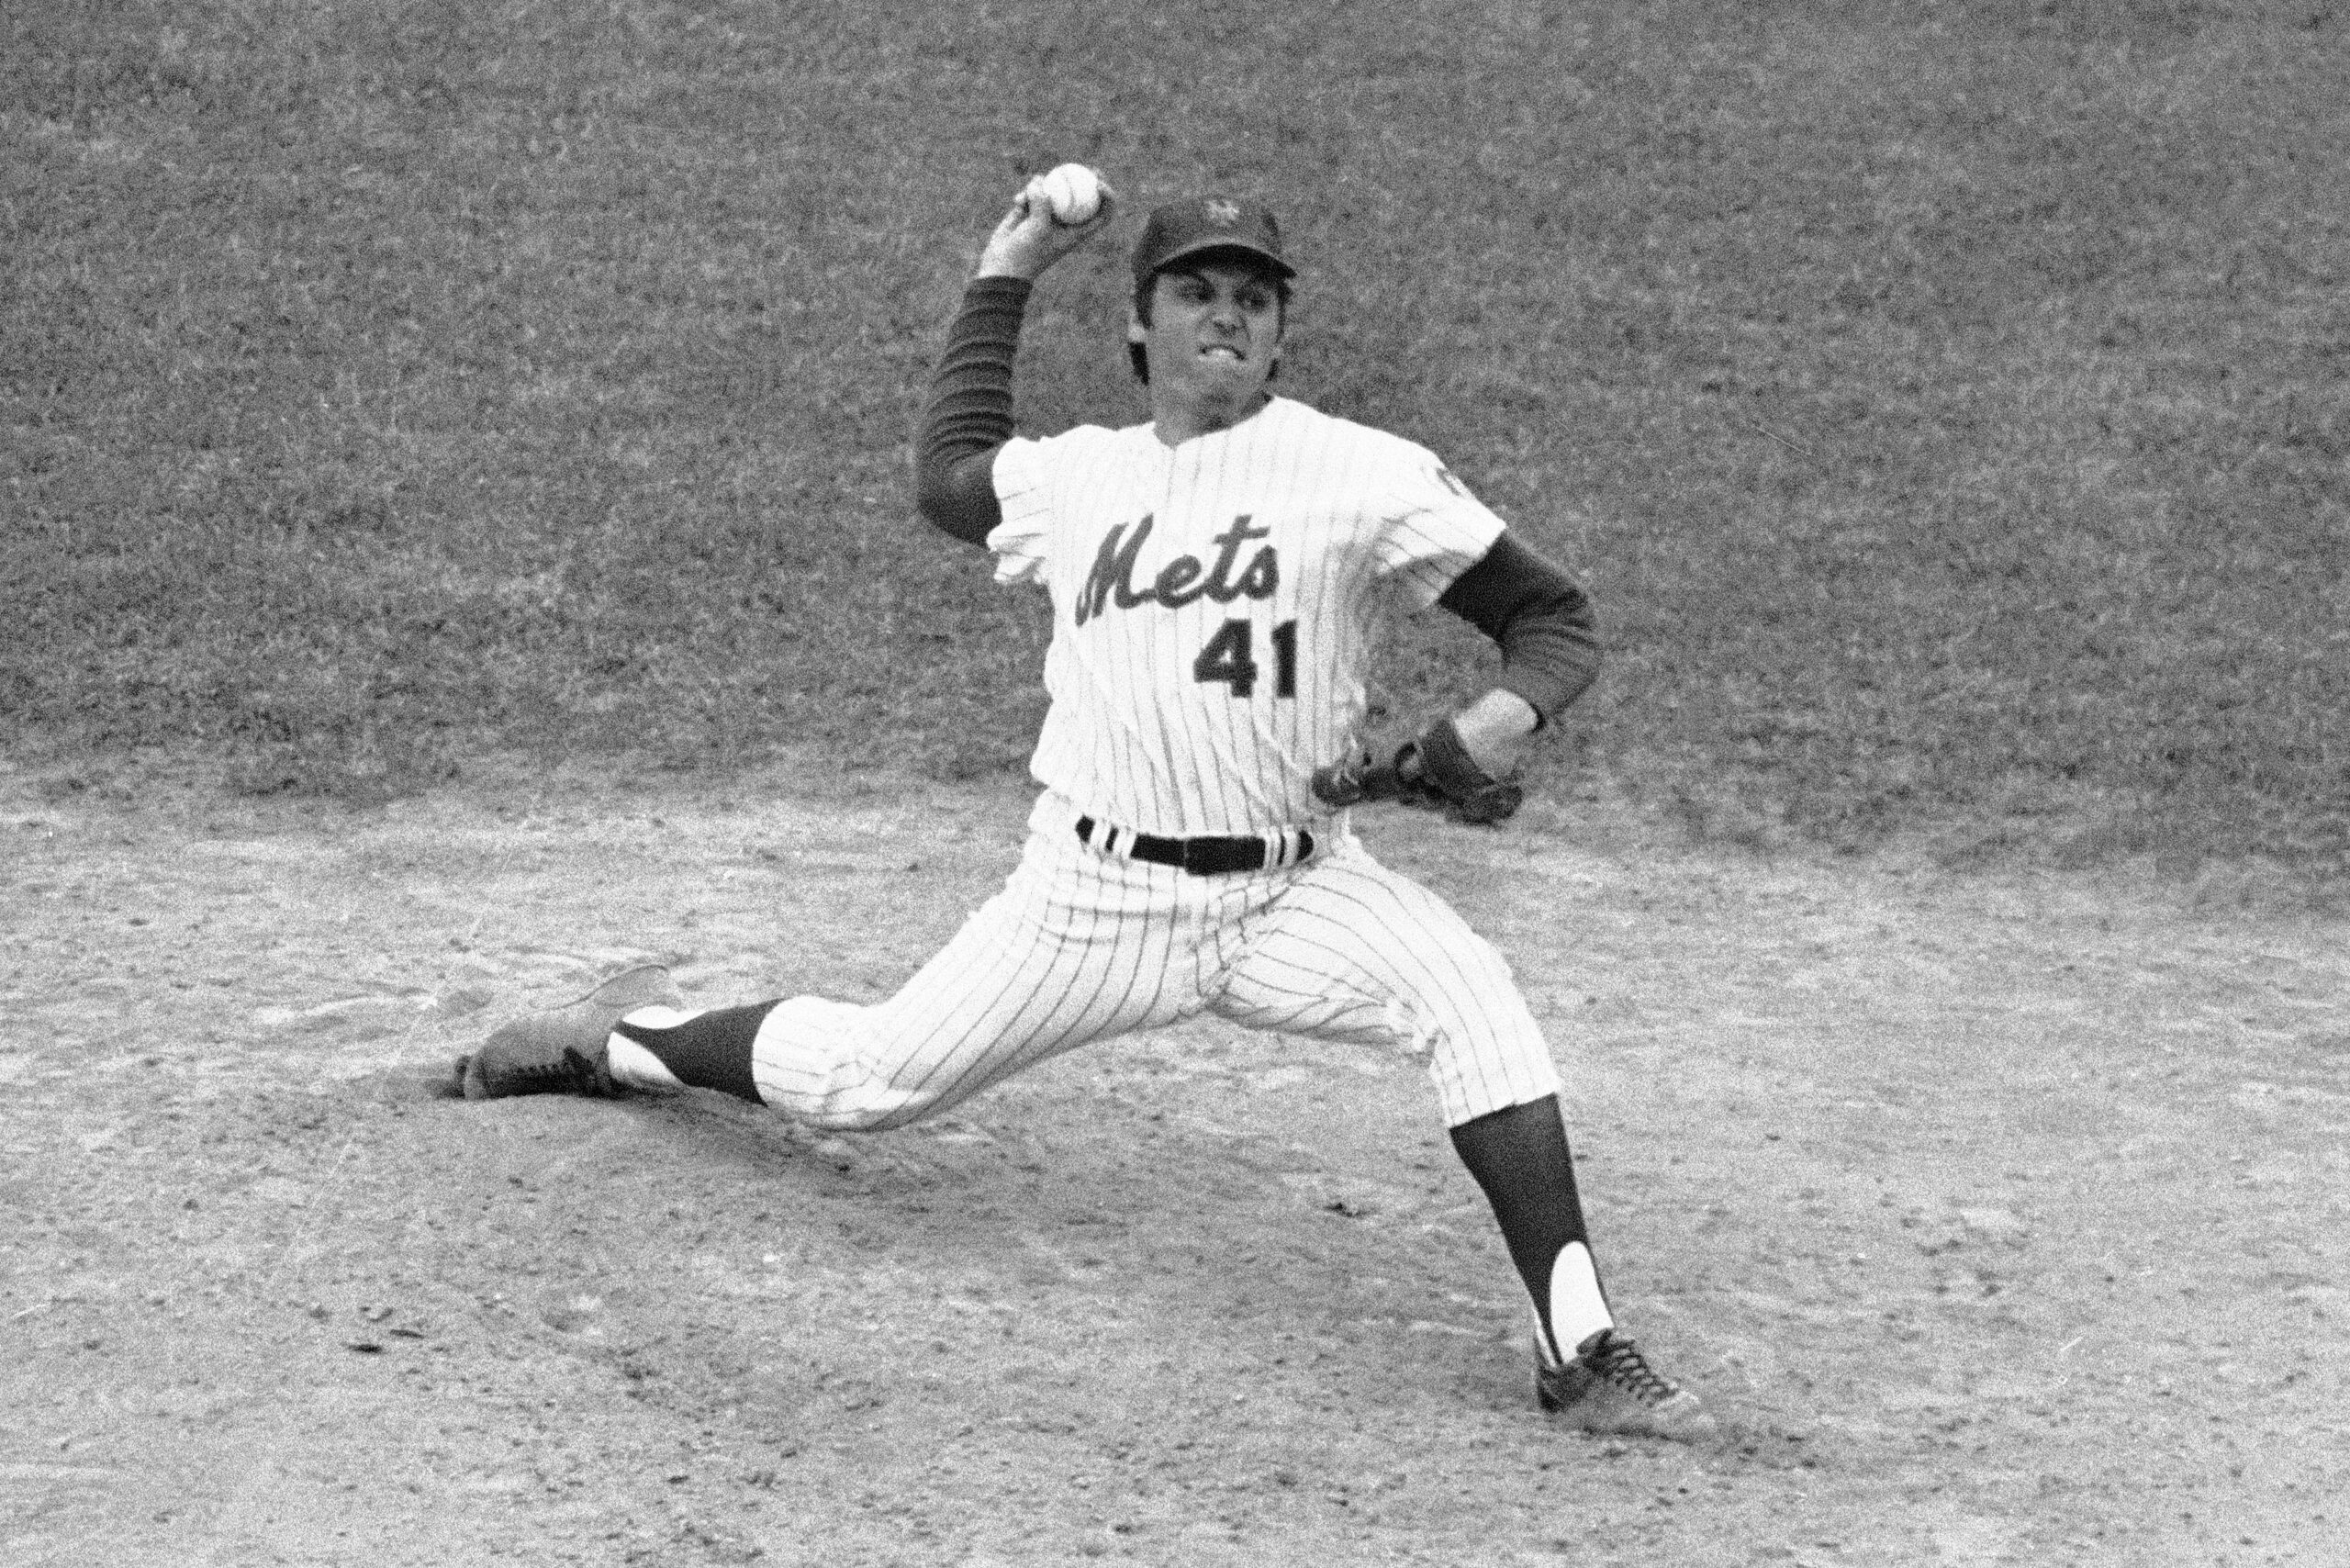 Mets to Honor Seaver with 41 Patch on Jerseys This Season - snopes